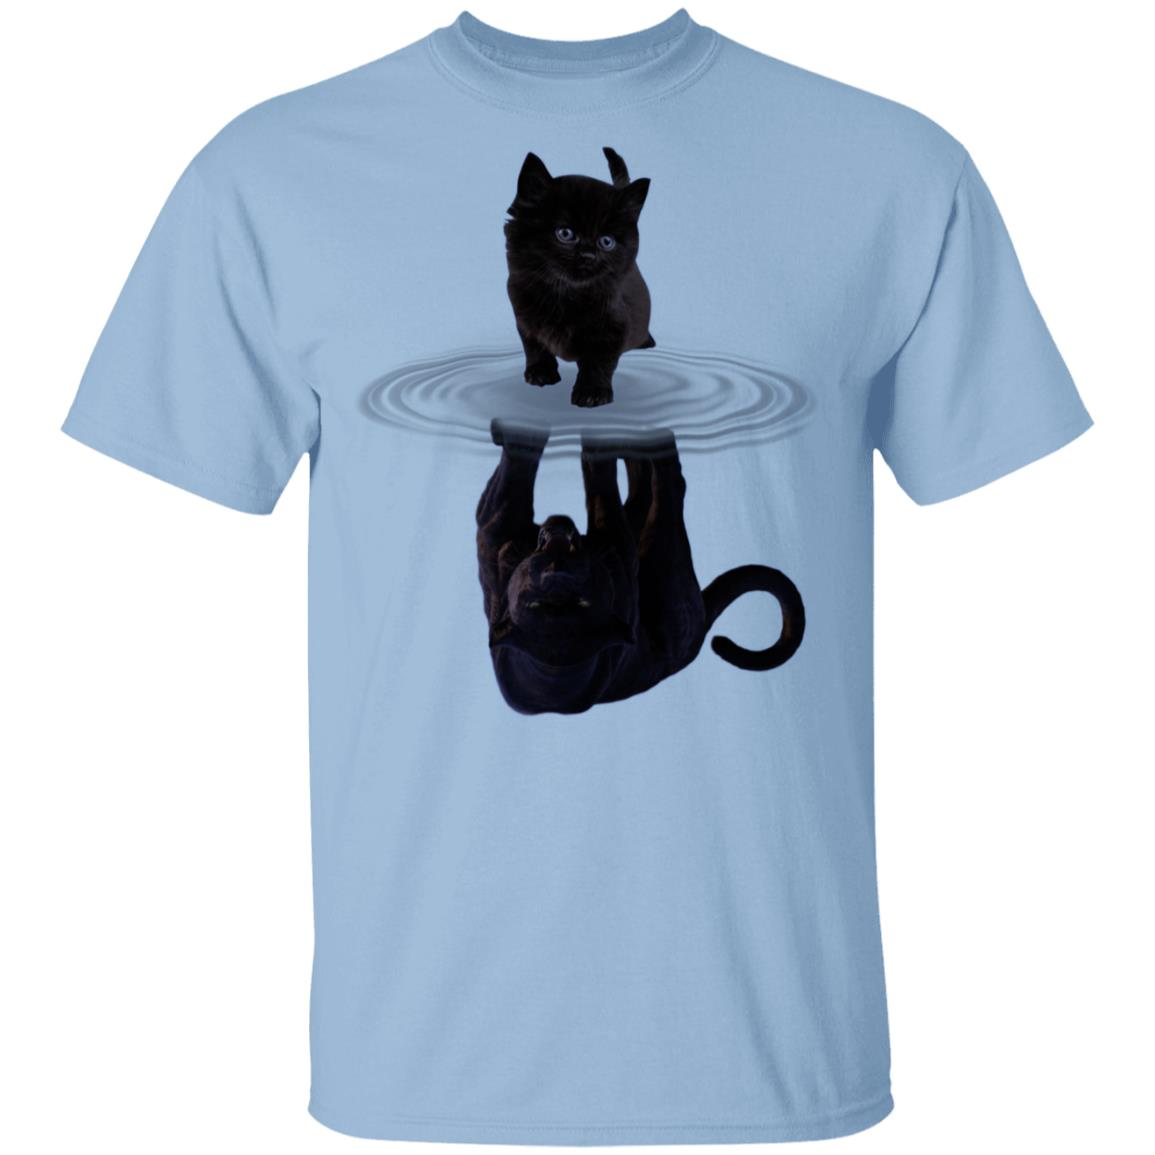 Hipster Fun Black Cat Falling Down T Shirts Breathable Cotton T-shirt